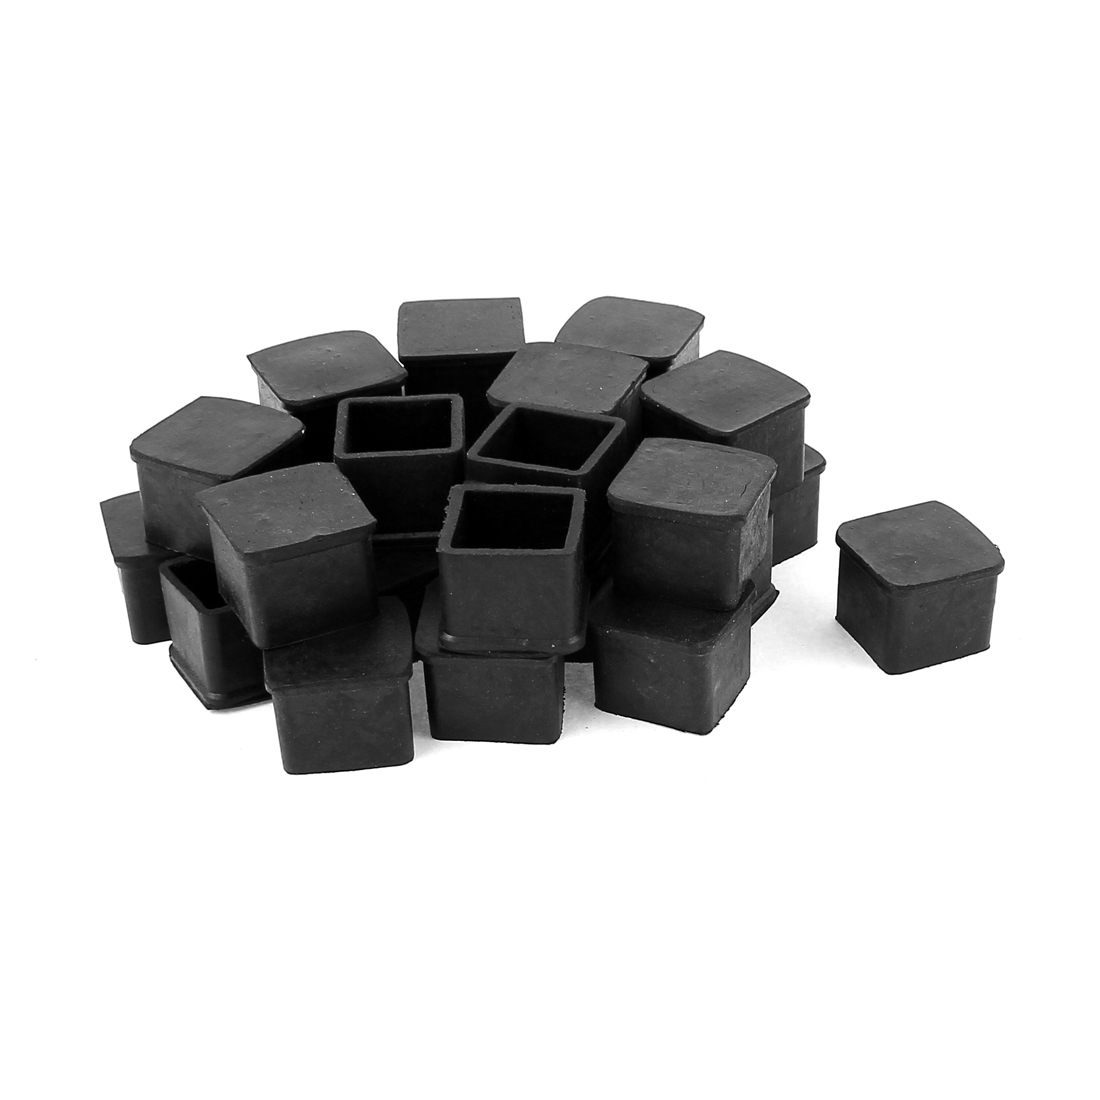 Furniture Foot Square Rubber Covers Protector 25mmx25mm Black 28pcs